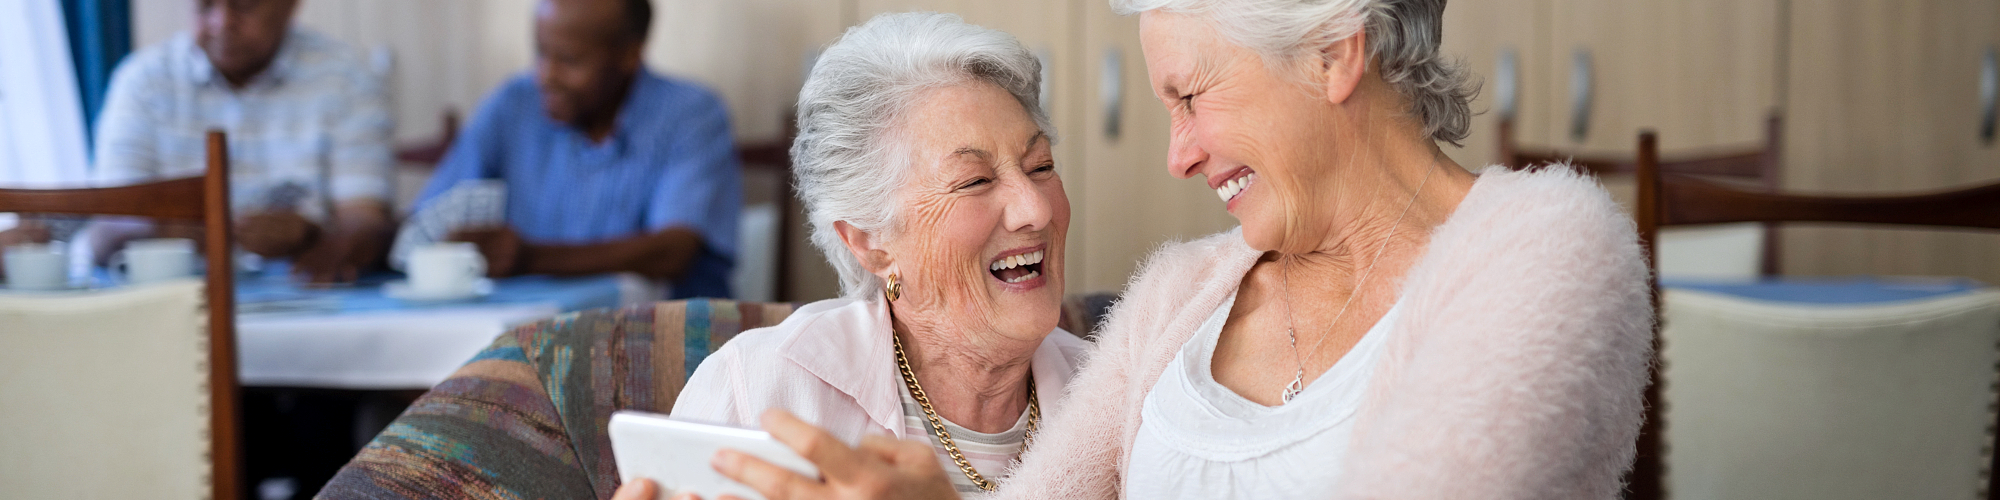 old women looking at each other while smiling""